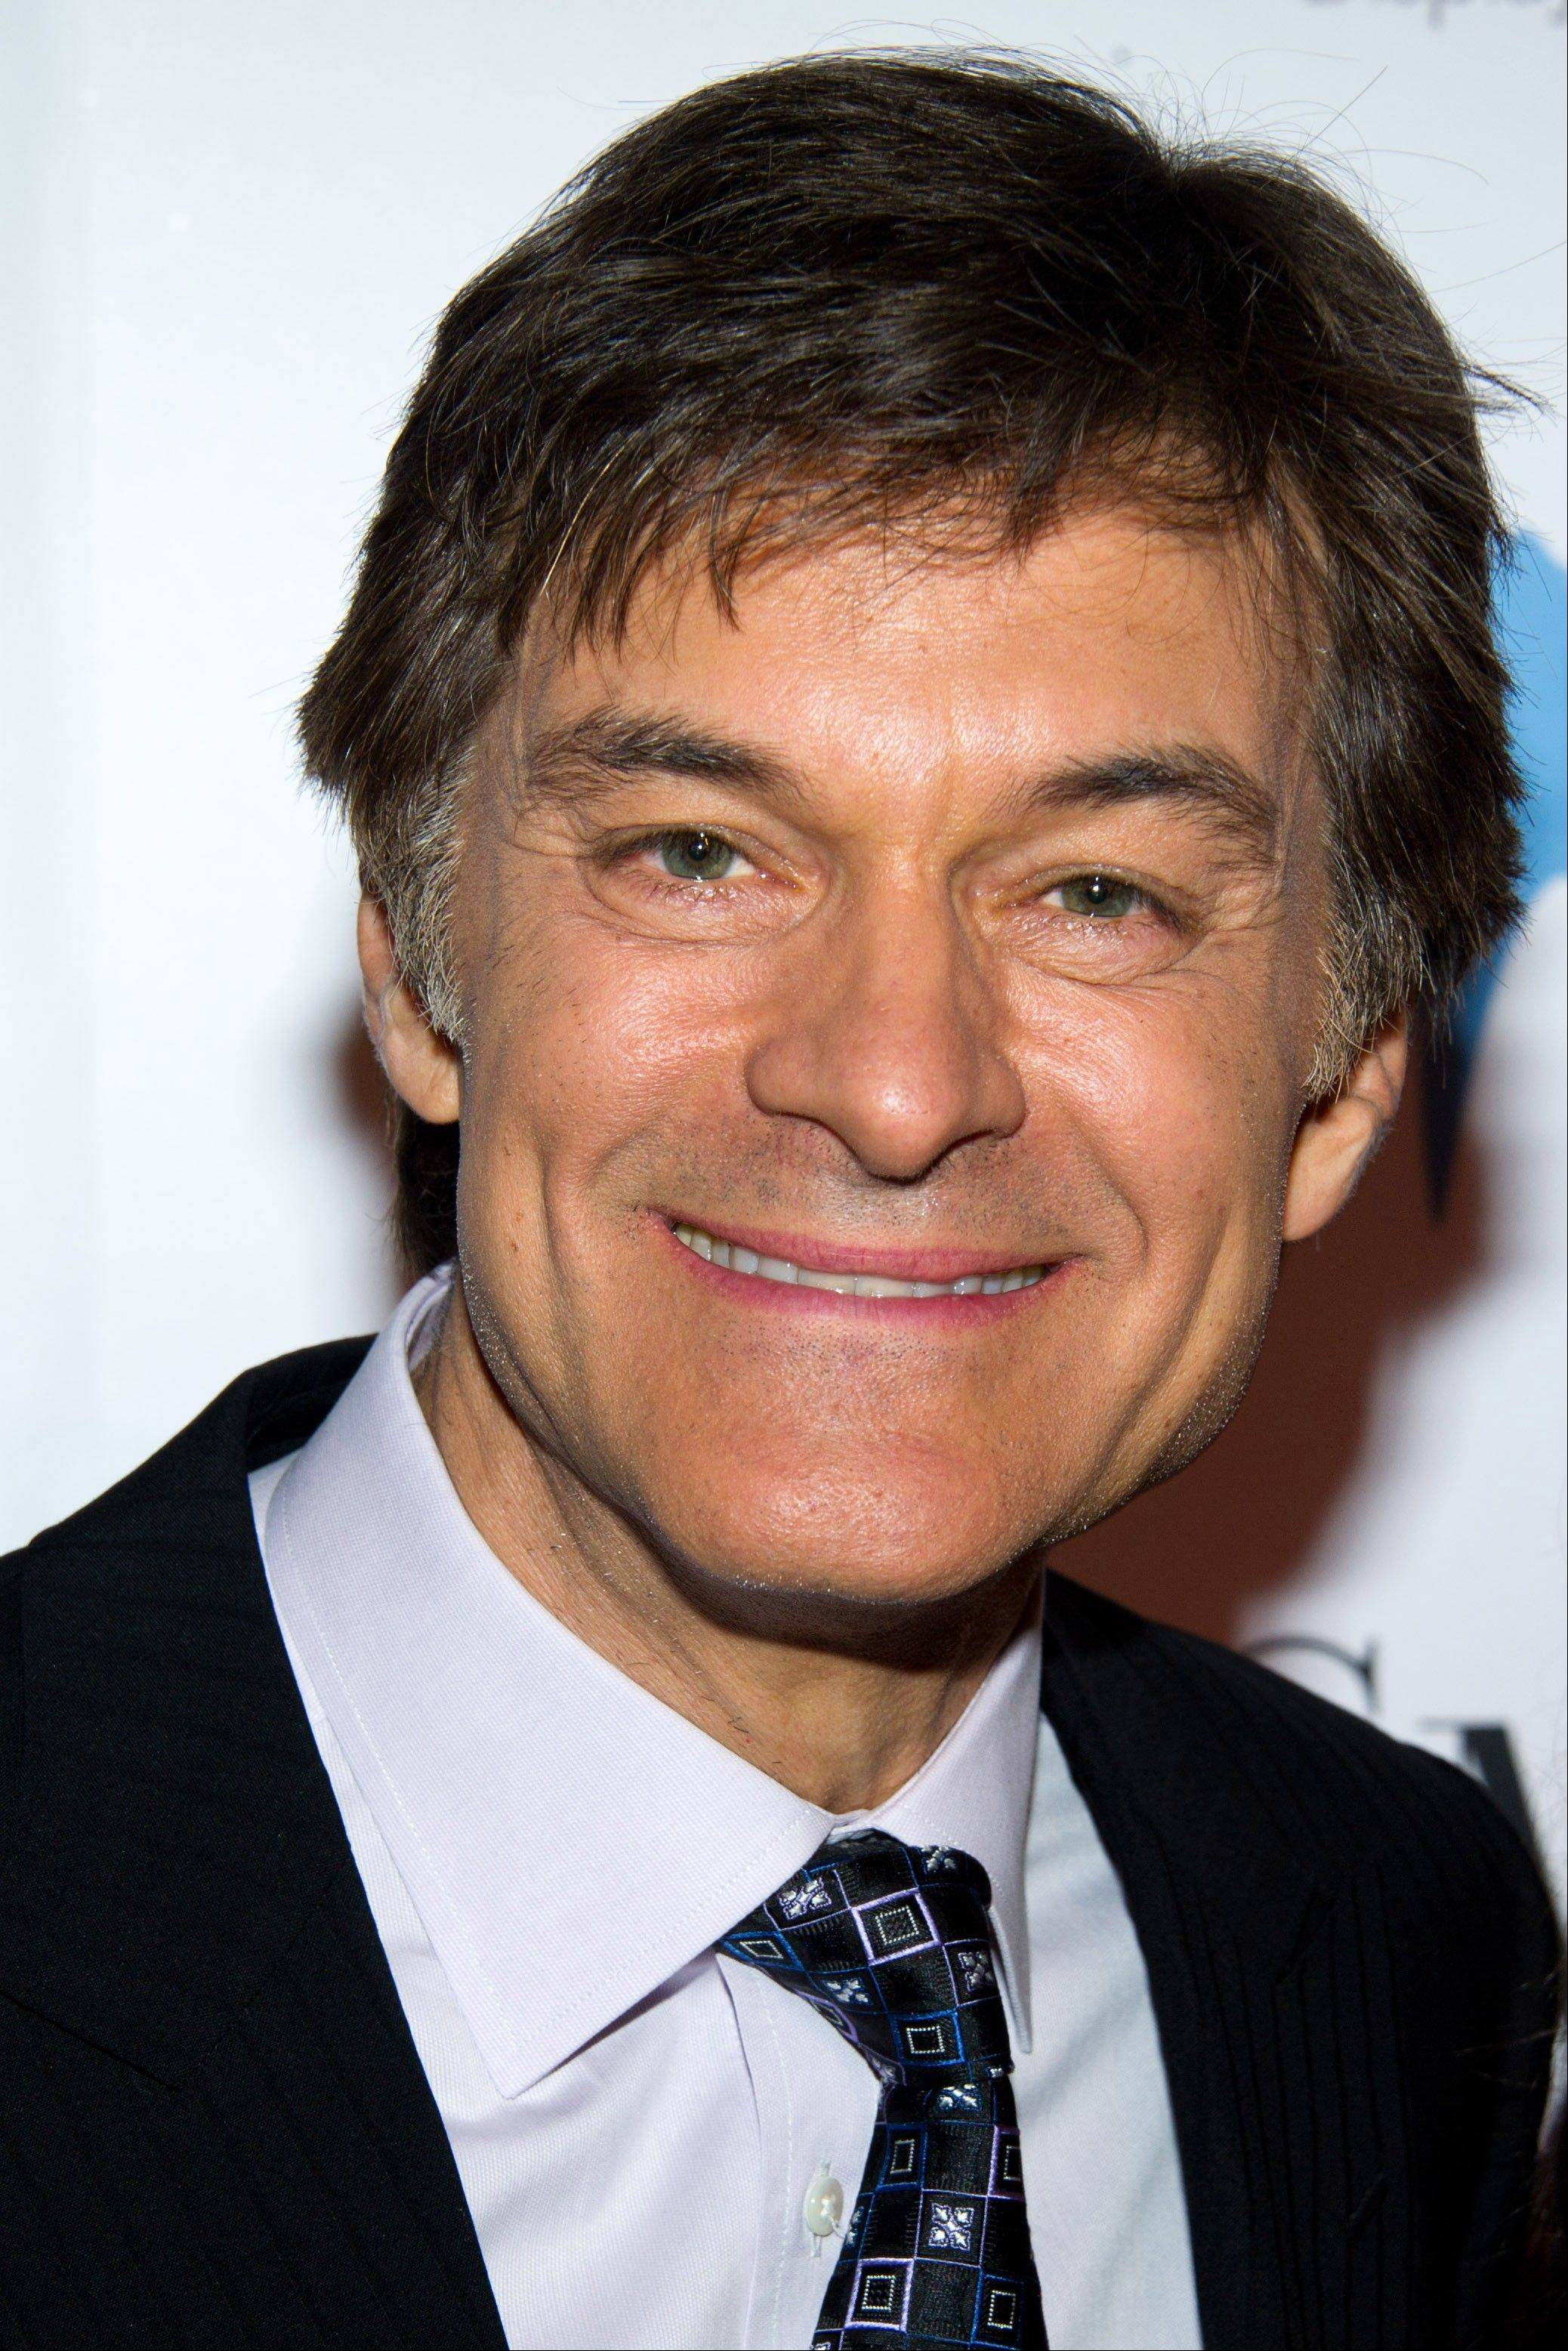 The federal Food and Drug Administration and a leading doctor are disputing claims by Dr. Mehmet Oz that trace amounts of arsenic in many apple juice products pose a health risk.